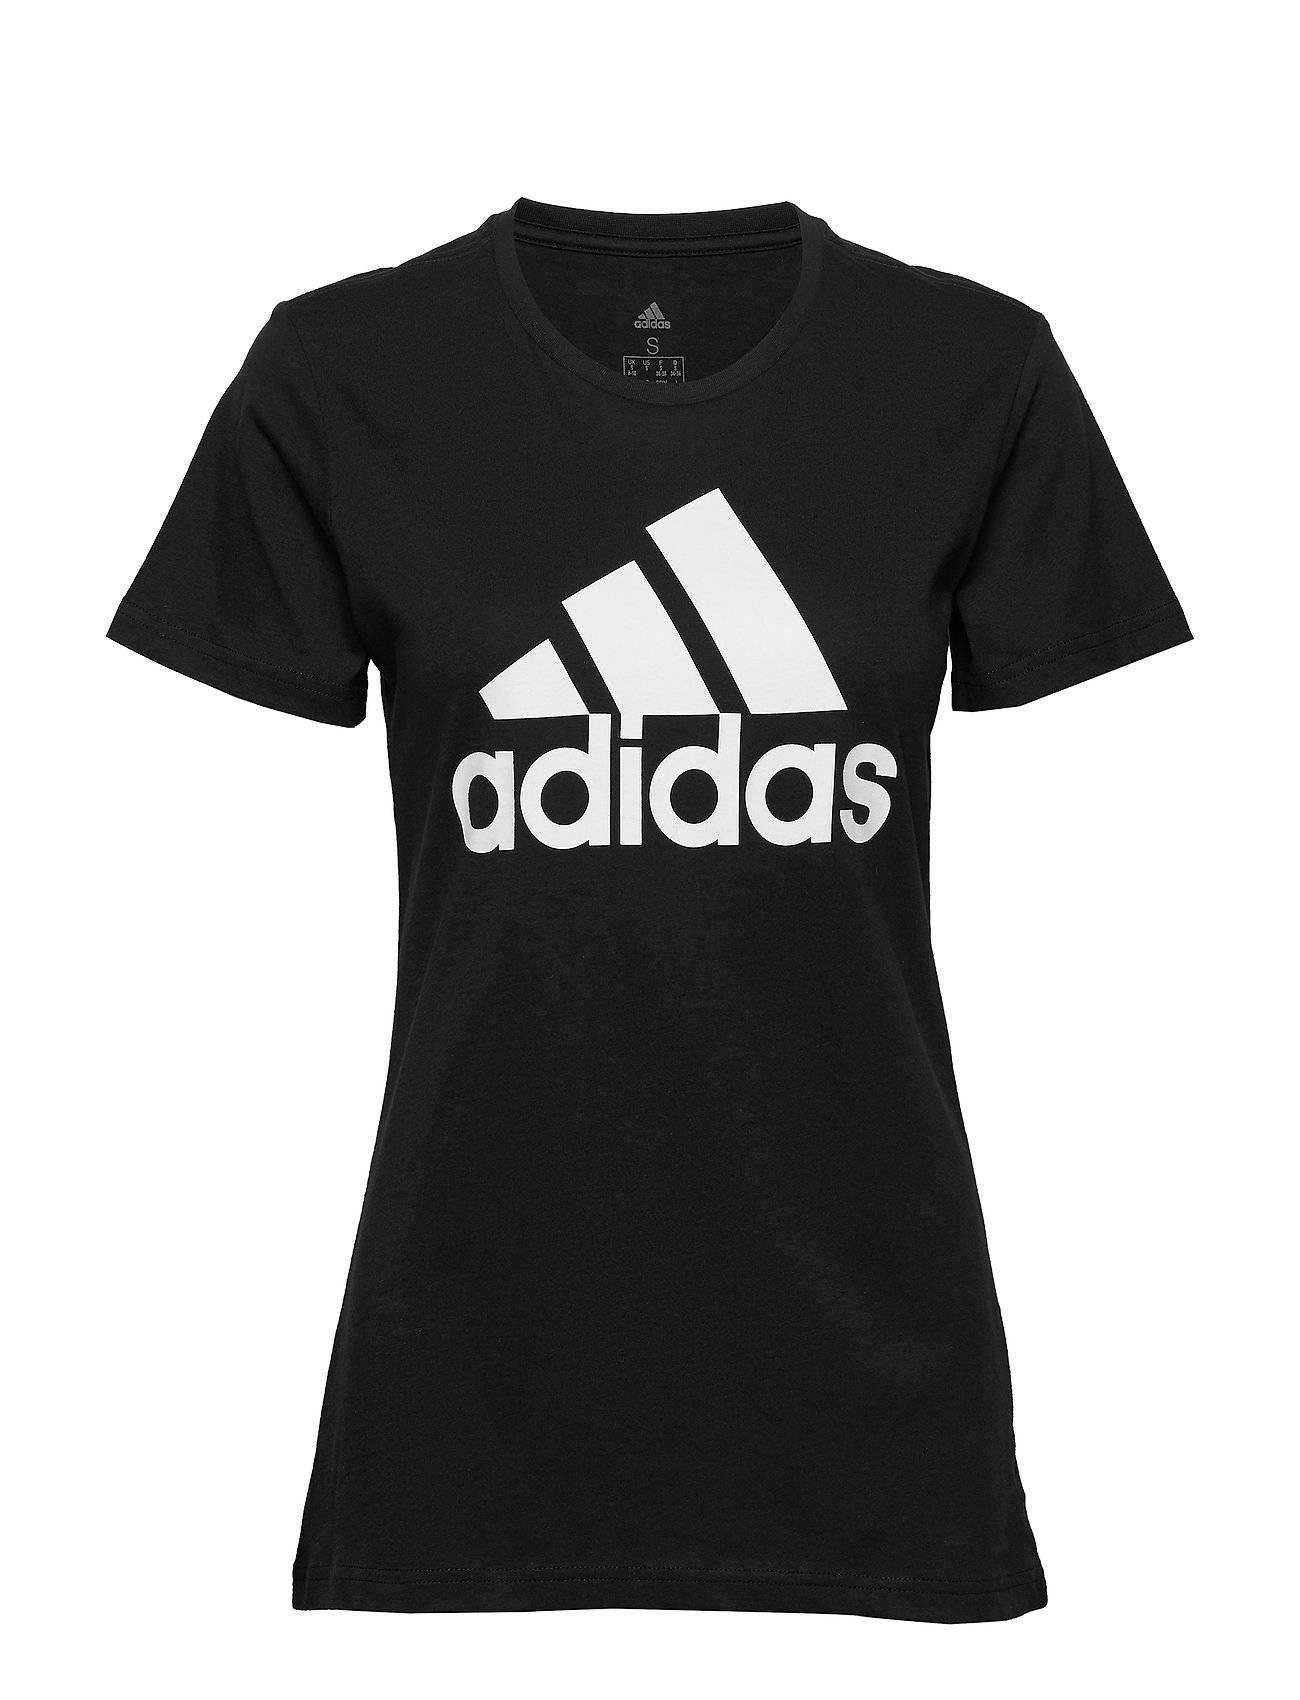 Image of adidas Performance W Bos Co Tee T-shirts & Tops Short-sleeved Musta Adidas Performance